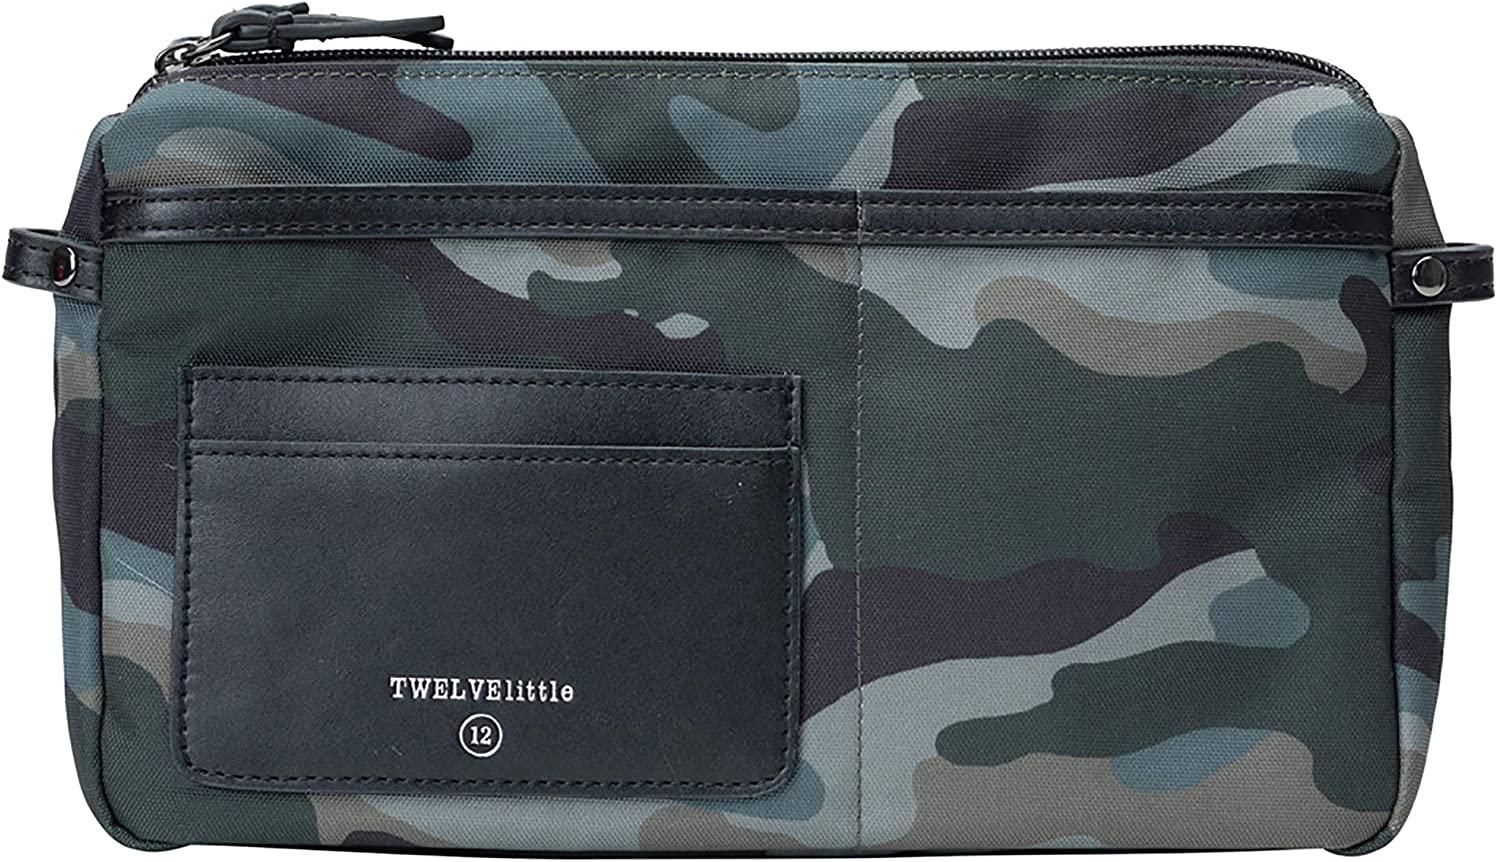 TWELVElittle by-My-Side Crossbody (Camo) - Convertible Crossbody Belt Bag, 2-Way Fanny Pack with Multiple Pockets